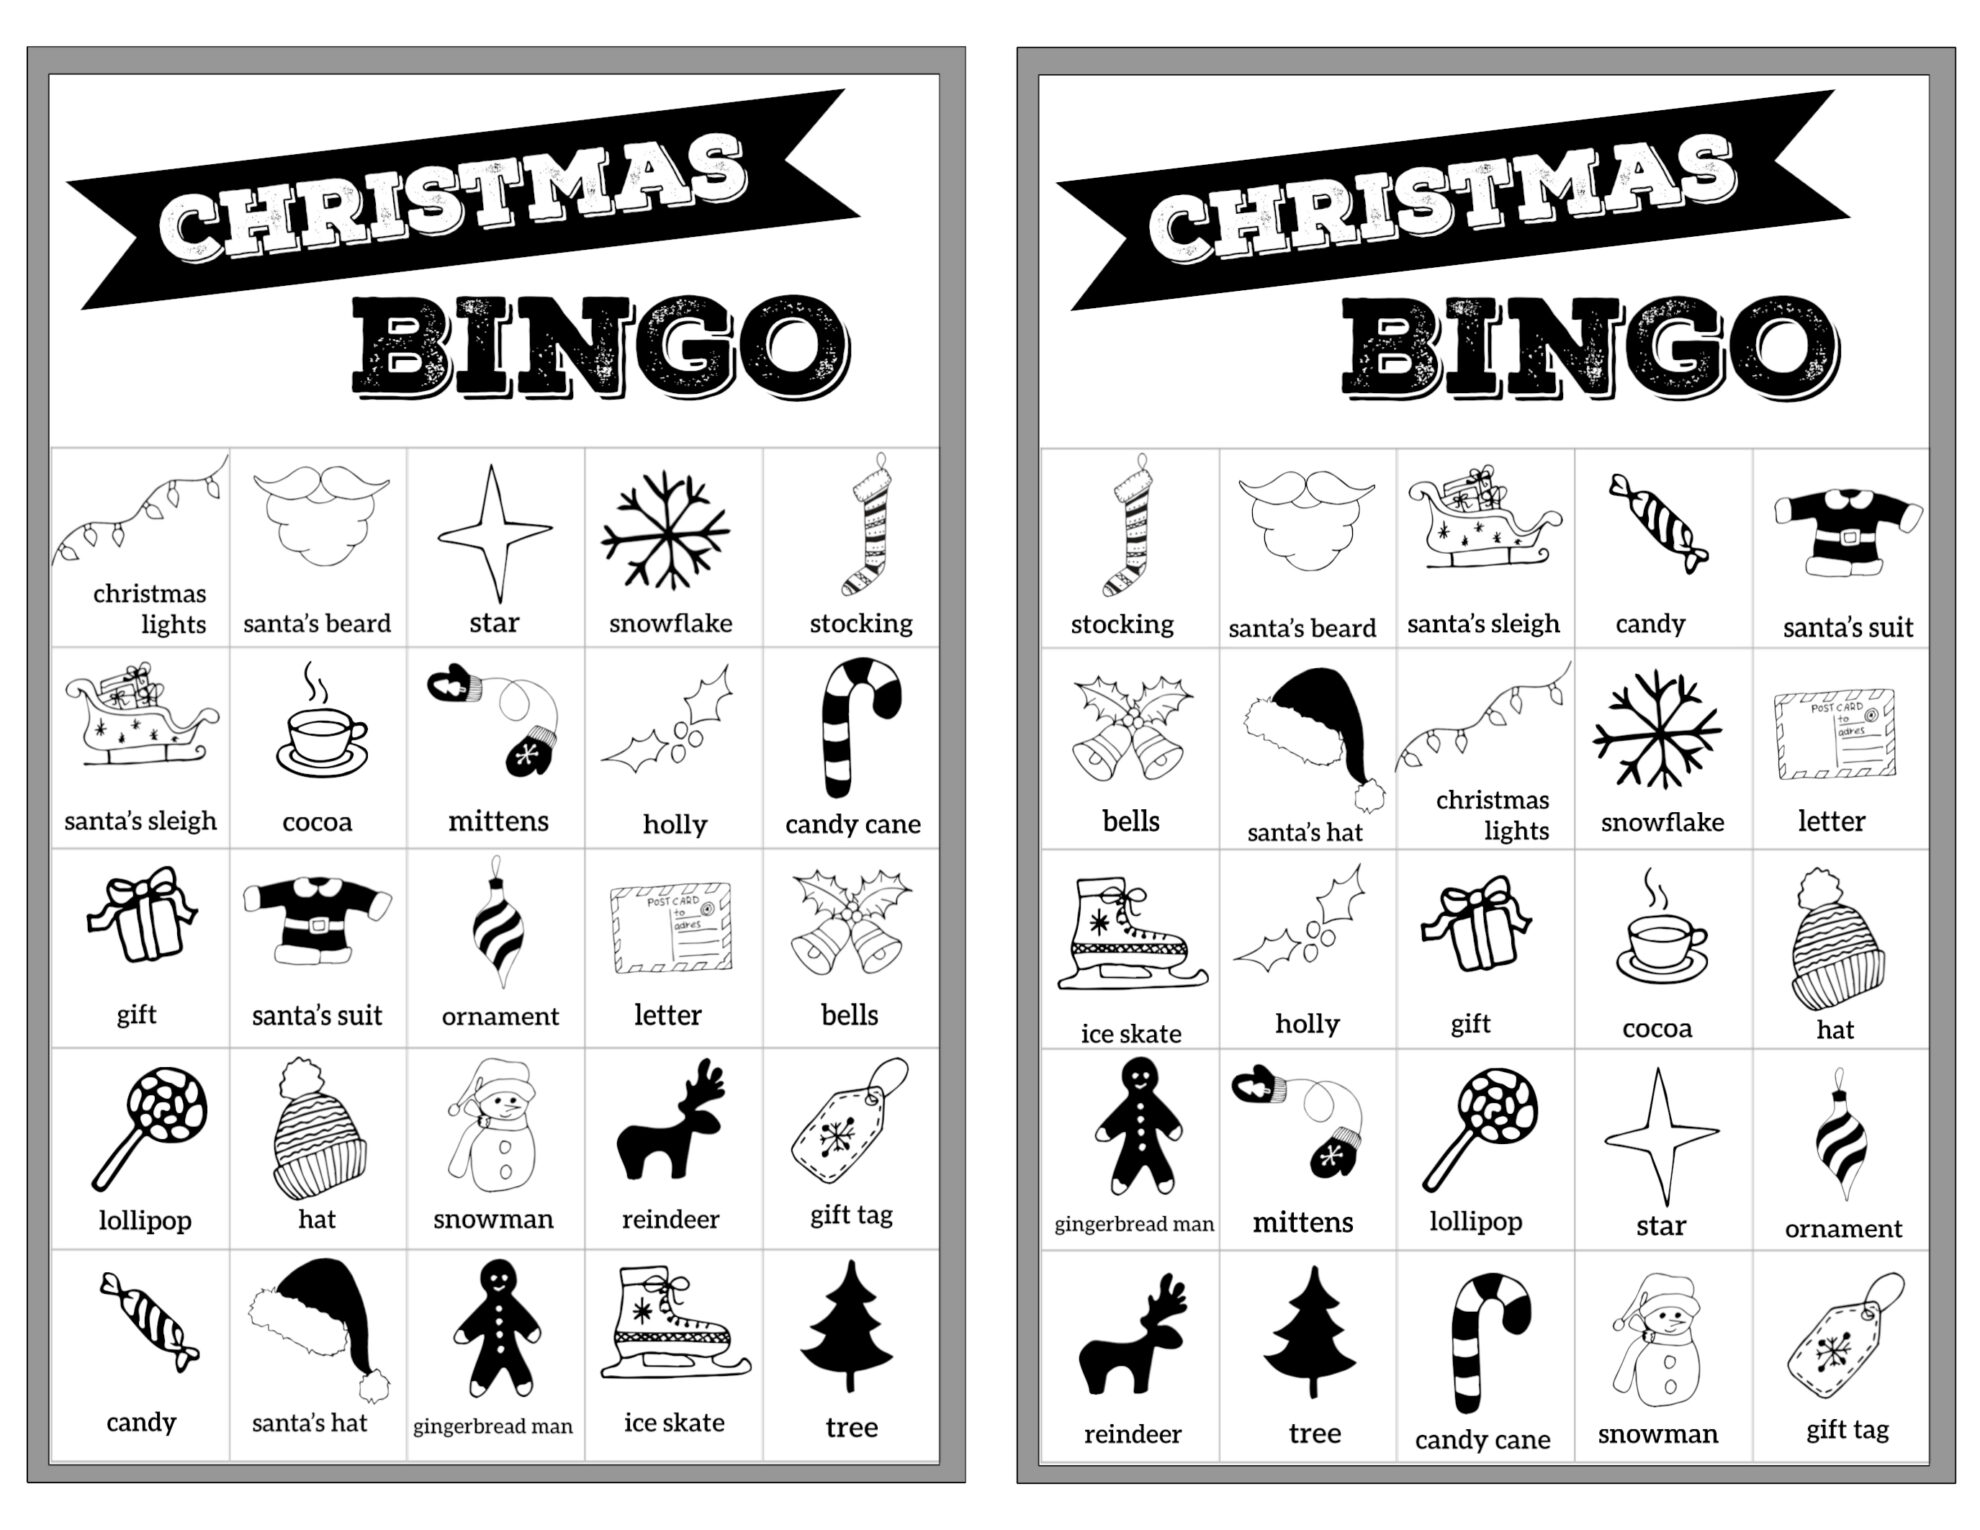 Sly image pertaining to free printable christmas bingo